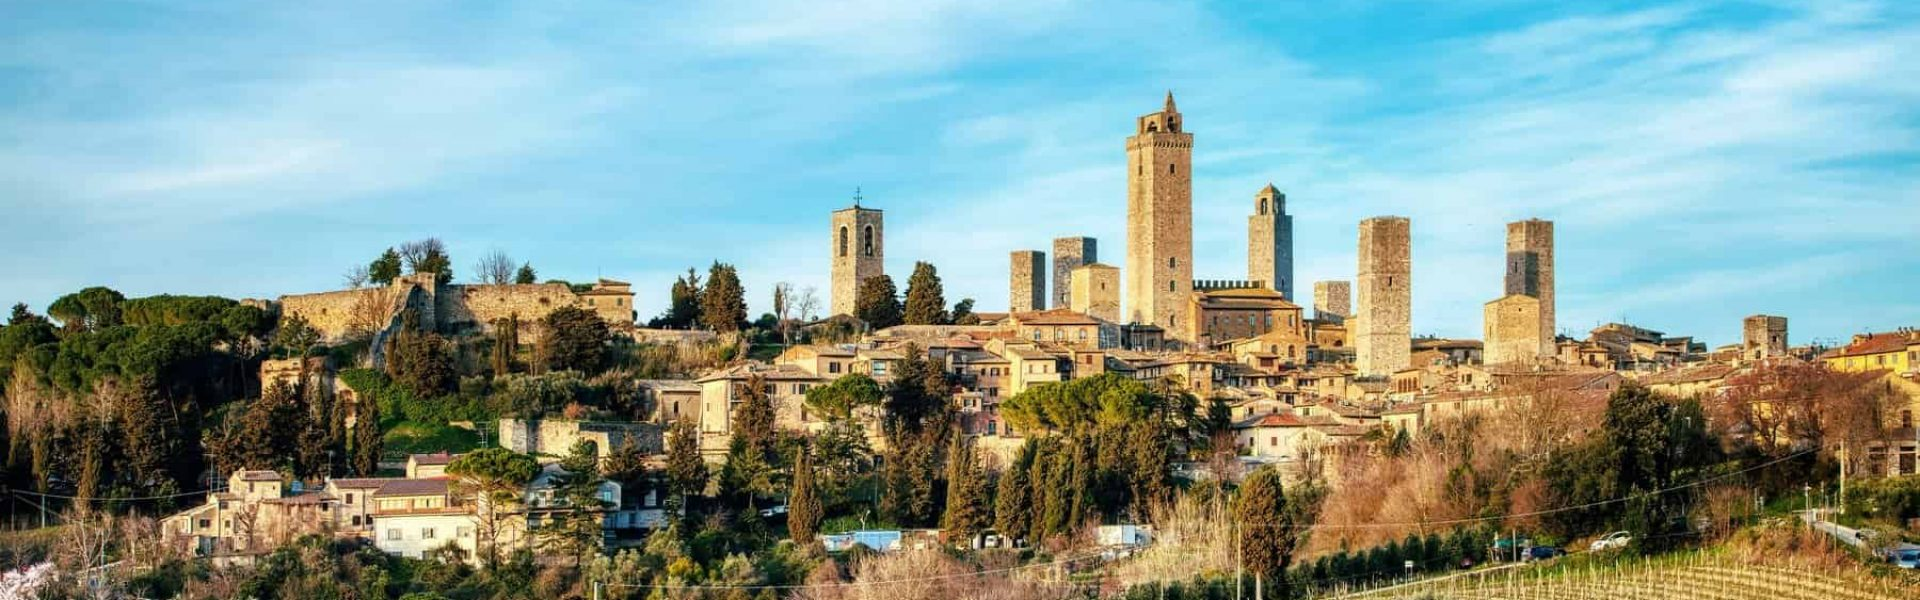 Saint Gimignano. medieval city in Tuscany Italy. Called the Manhattan of the Middle Ages